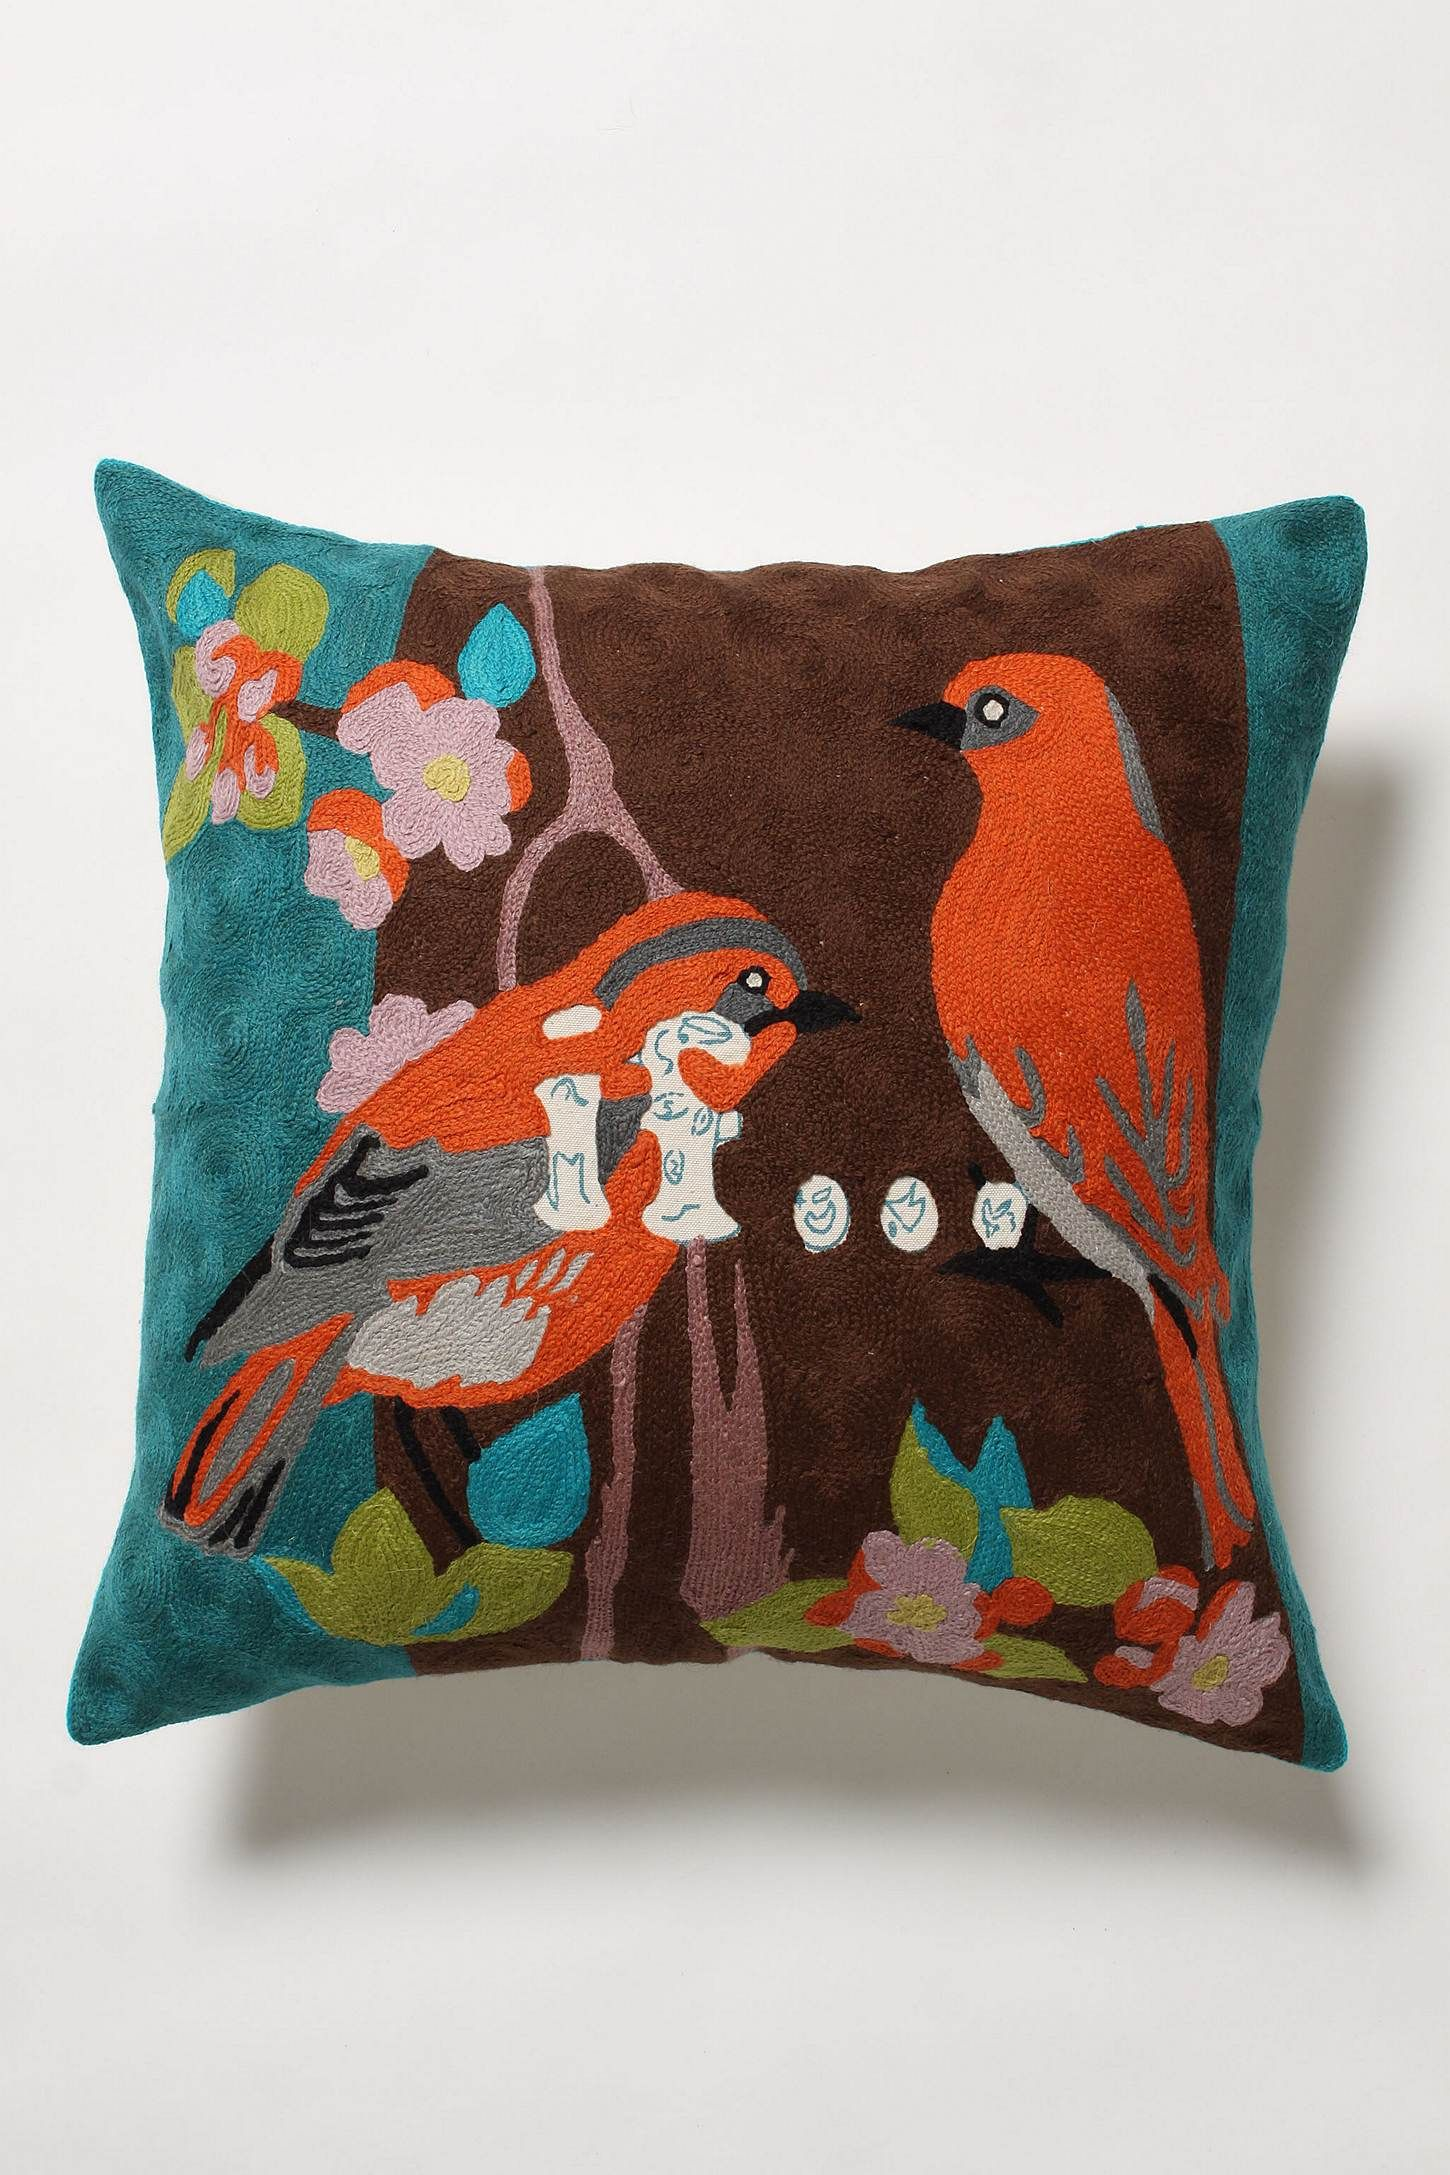 Anthropology If...Then Pillow